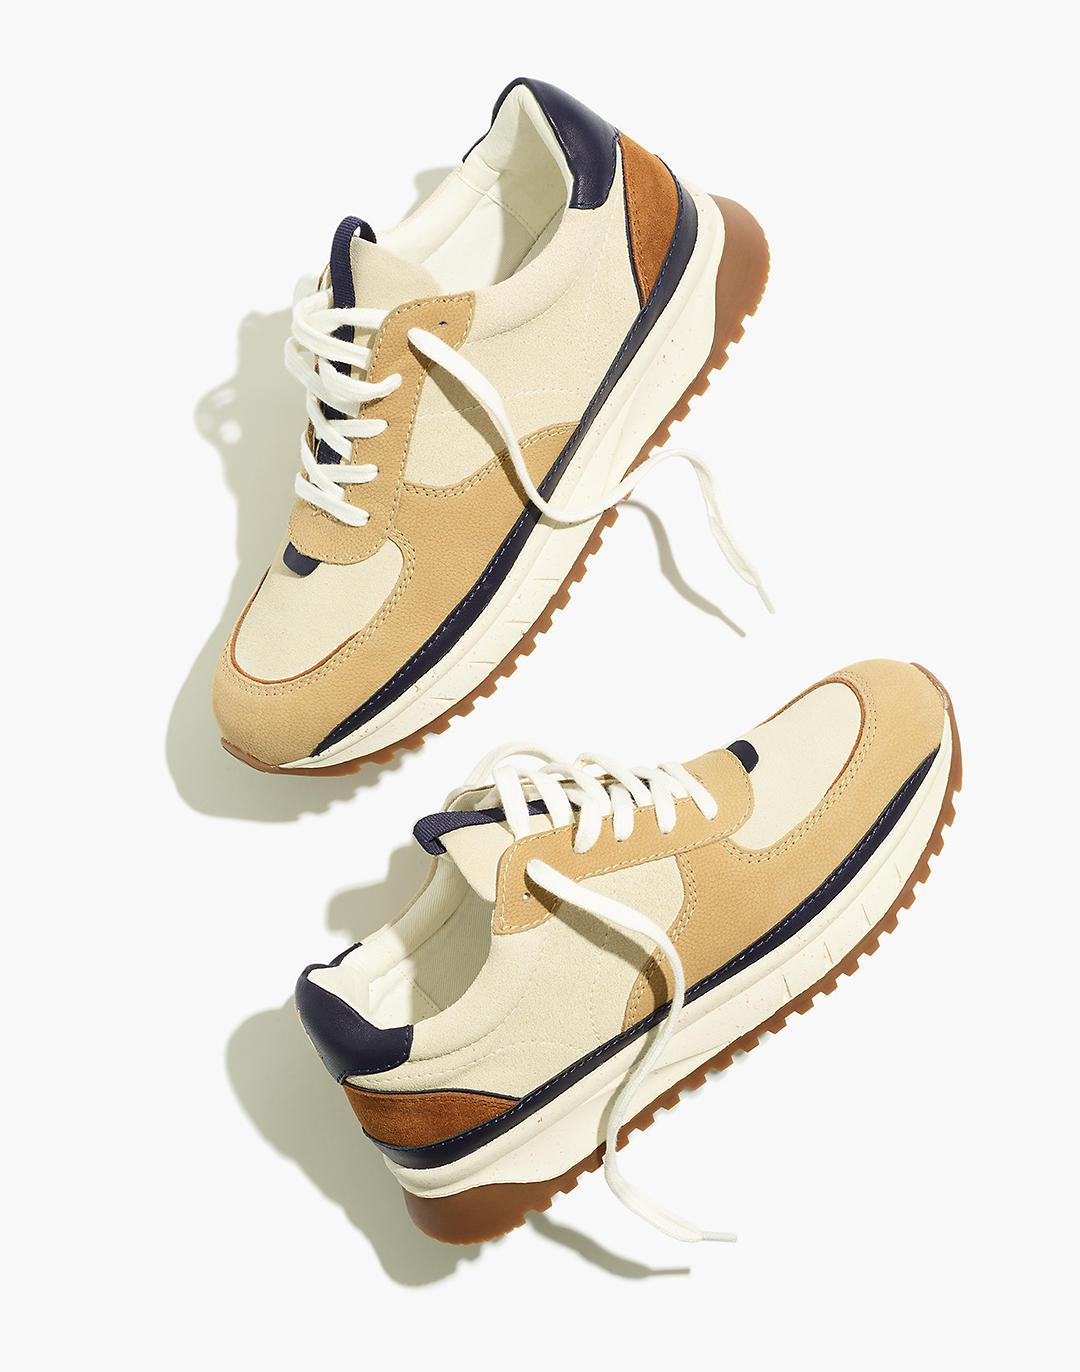 Kickoff Trainer Sneakers in Suede and Nubuck